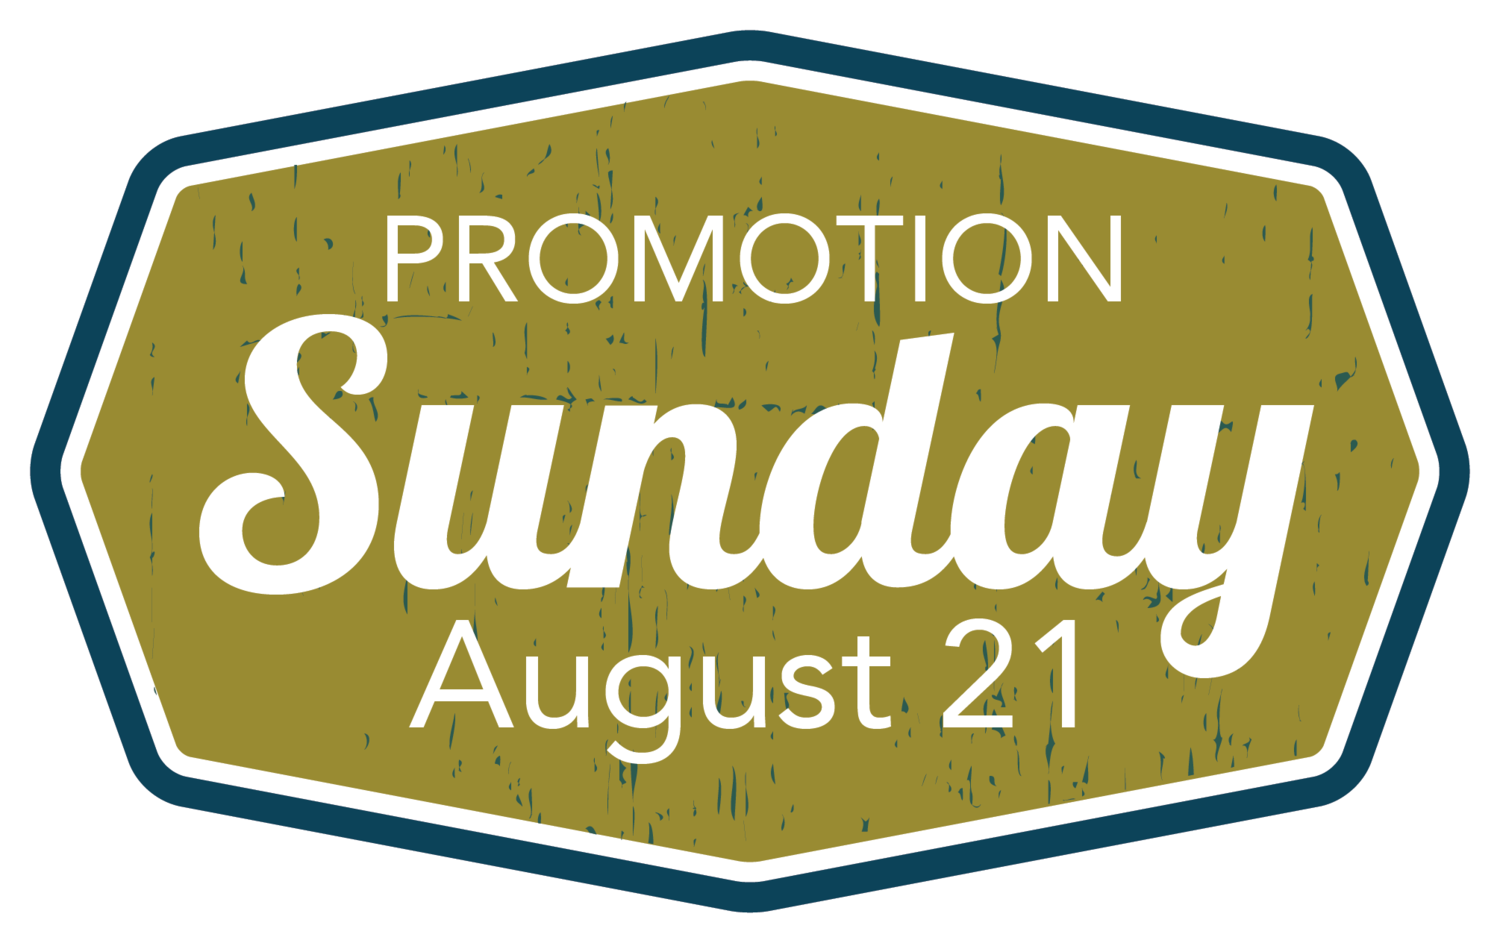 Sunday school promotion clipart graphic library download Promotion Sunday — First United Methodist Church graphic library download